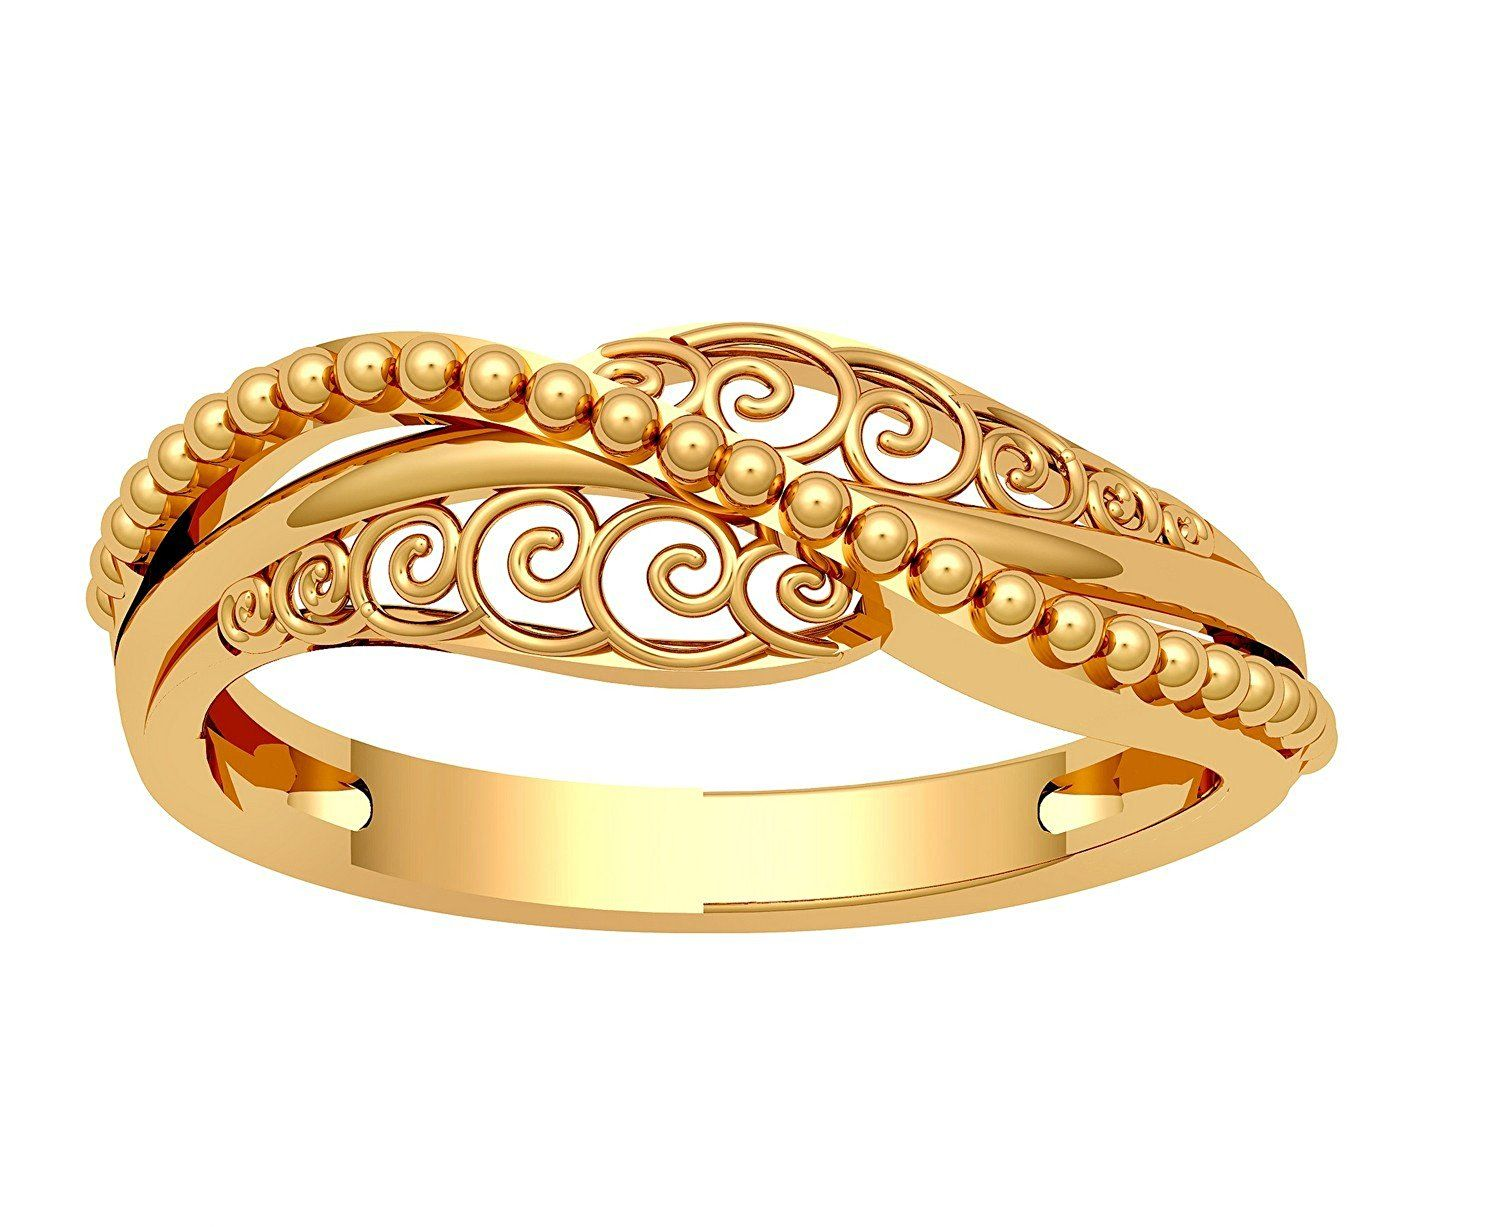 Jewelone 22k 916 Yellow Gold The Nerina Ring Amazon In Jewellery Gold Jewellery Design Necklaces Gold Jewelry Fashion Gold Ring Designs